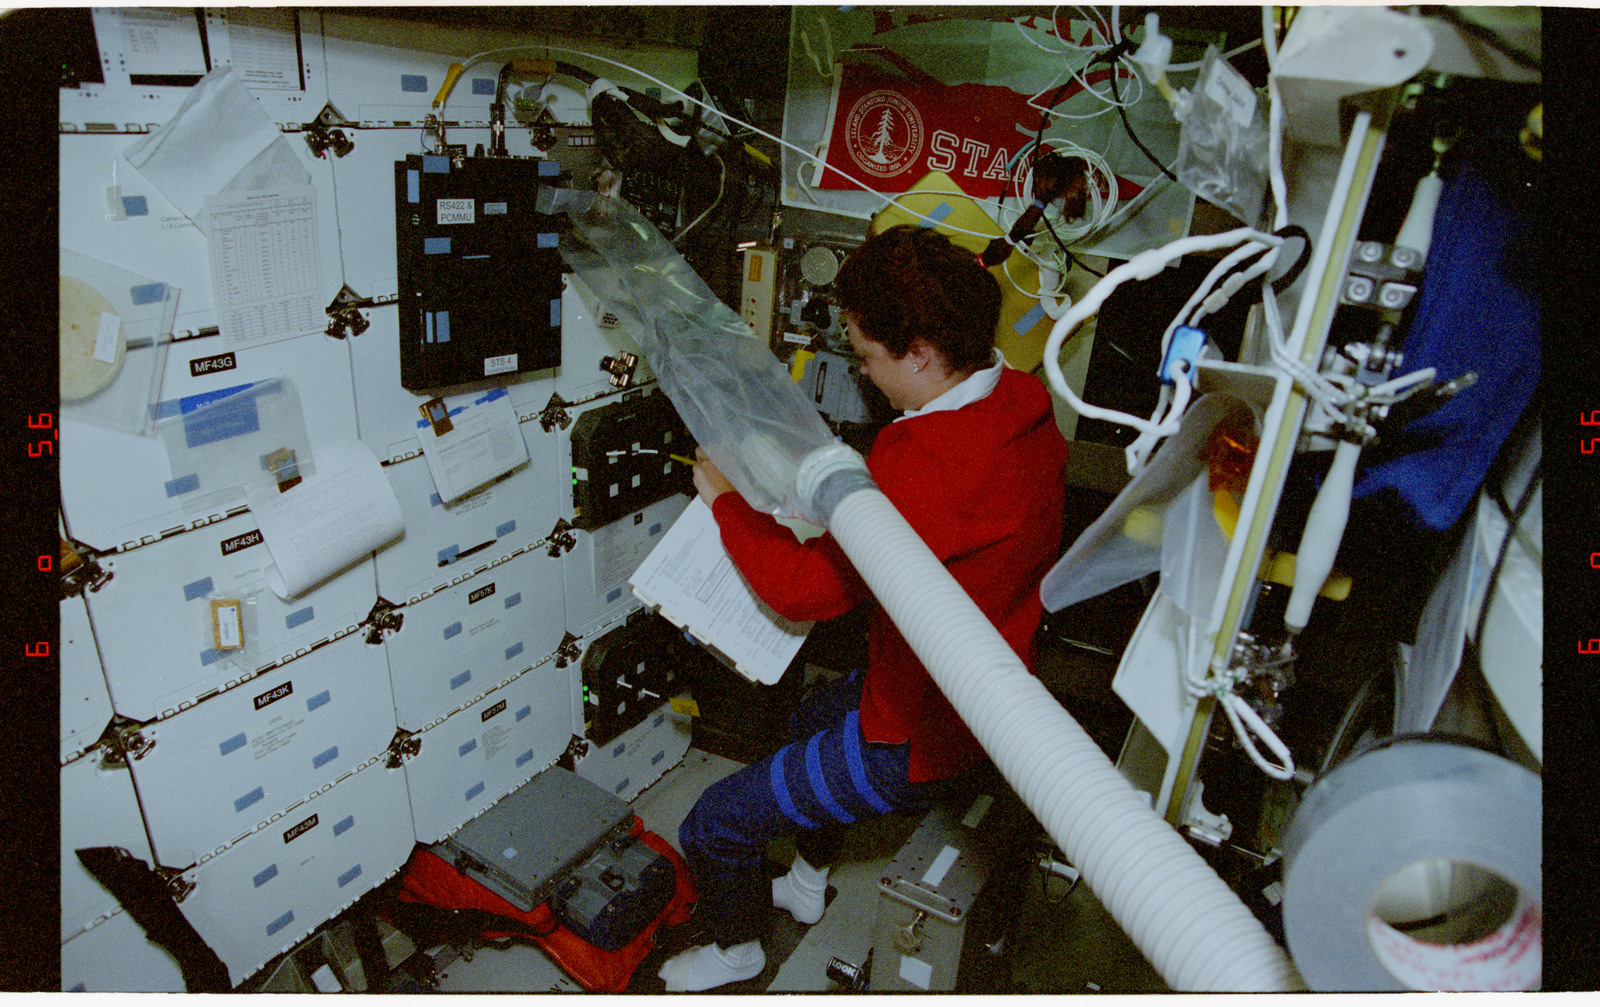 STS080-345-015 - STS-080 - CMIX-05, plastic bag on air ventilation duct blows air onto middeck locker